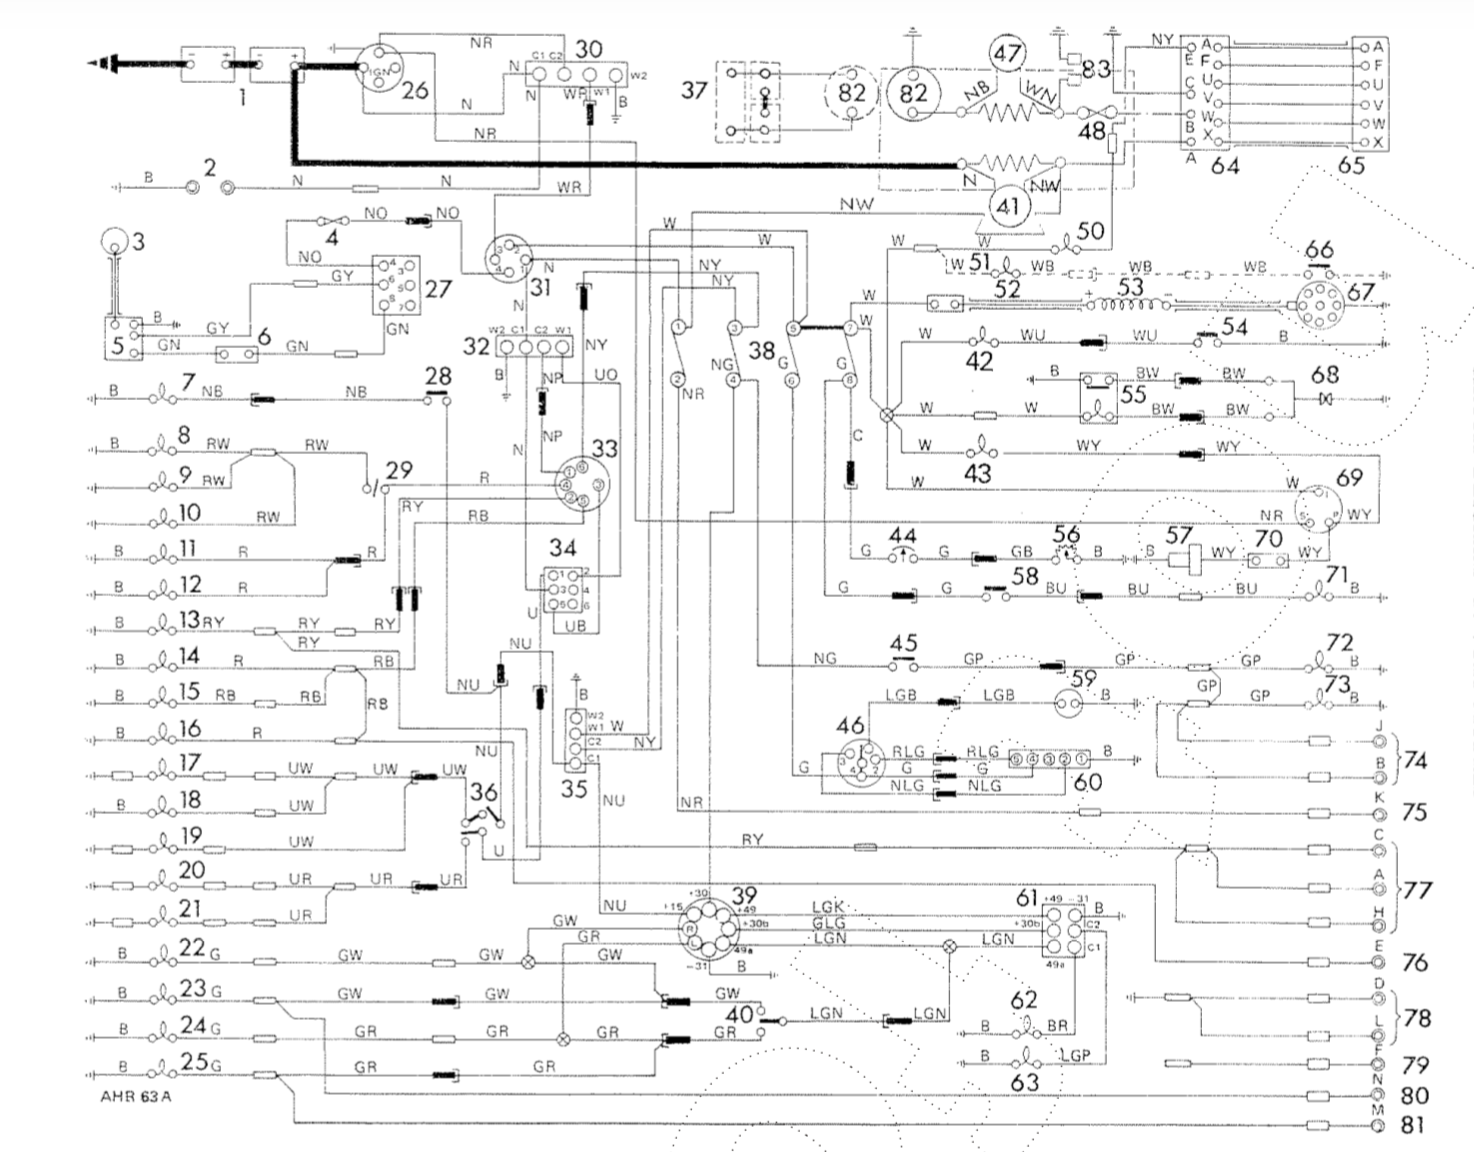 Land Rover 24v Wiring Diagram List Of Schematic Circuit Diagram \u2022 GM Wiring  Diagrams Land Rover 24v Wiring Diagram